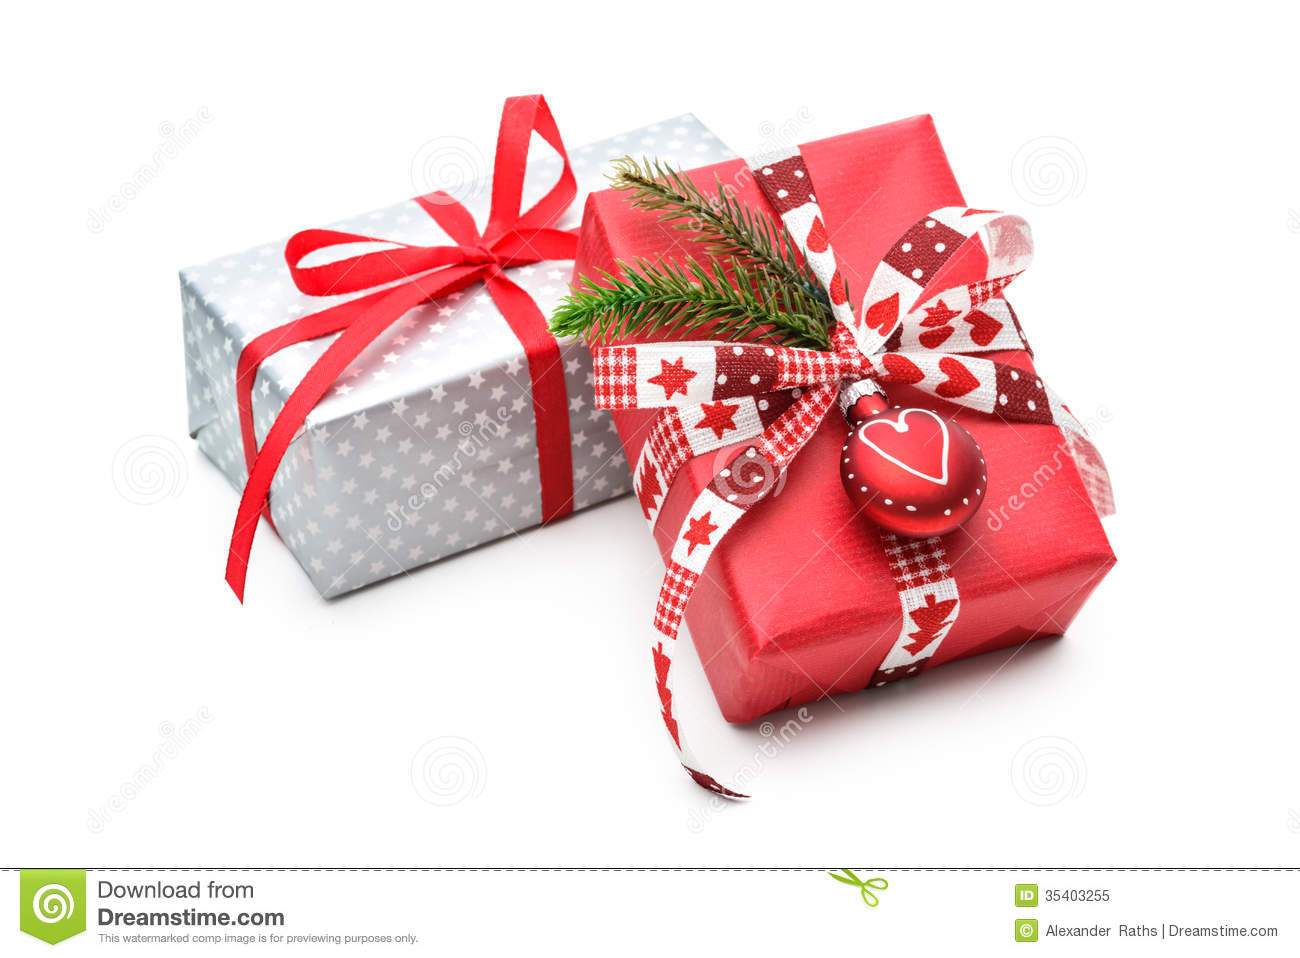 Christmas Gift Stock Image. Image Of Isolated, Bright